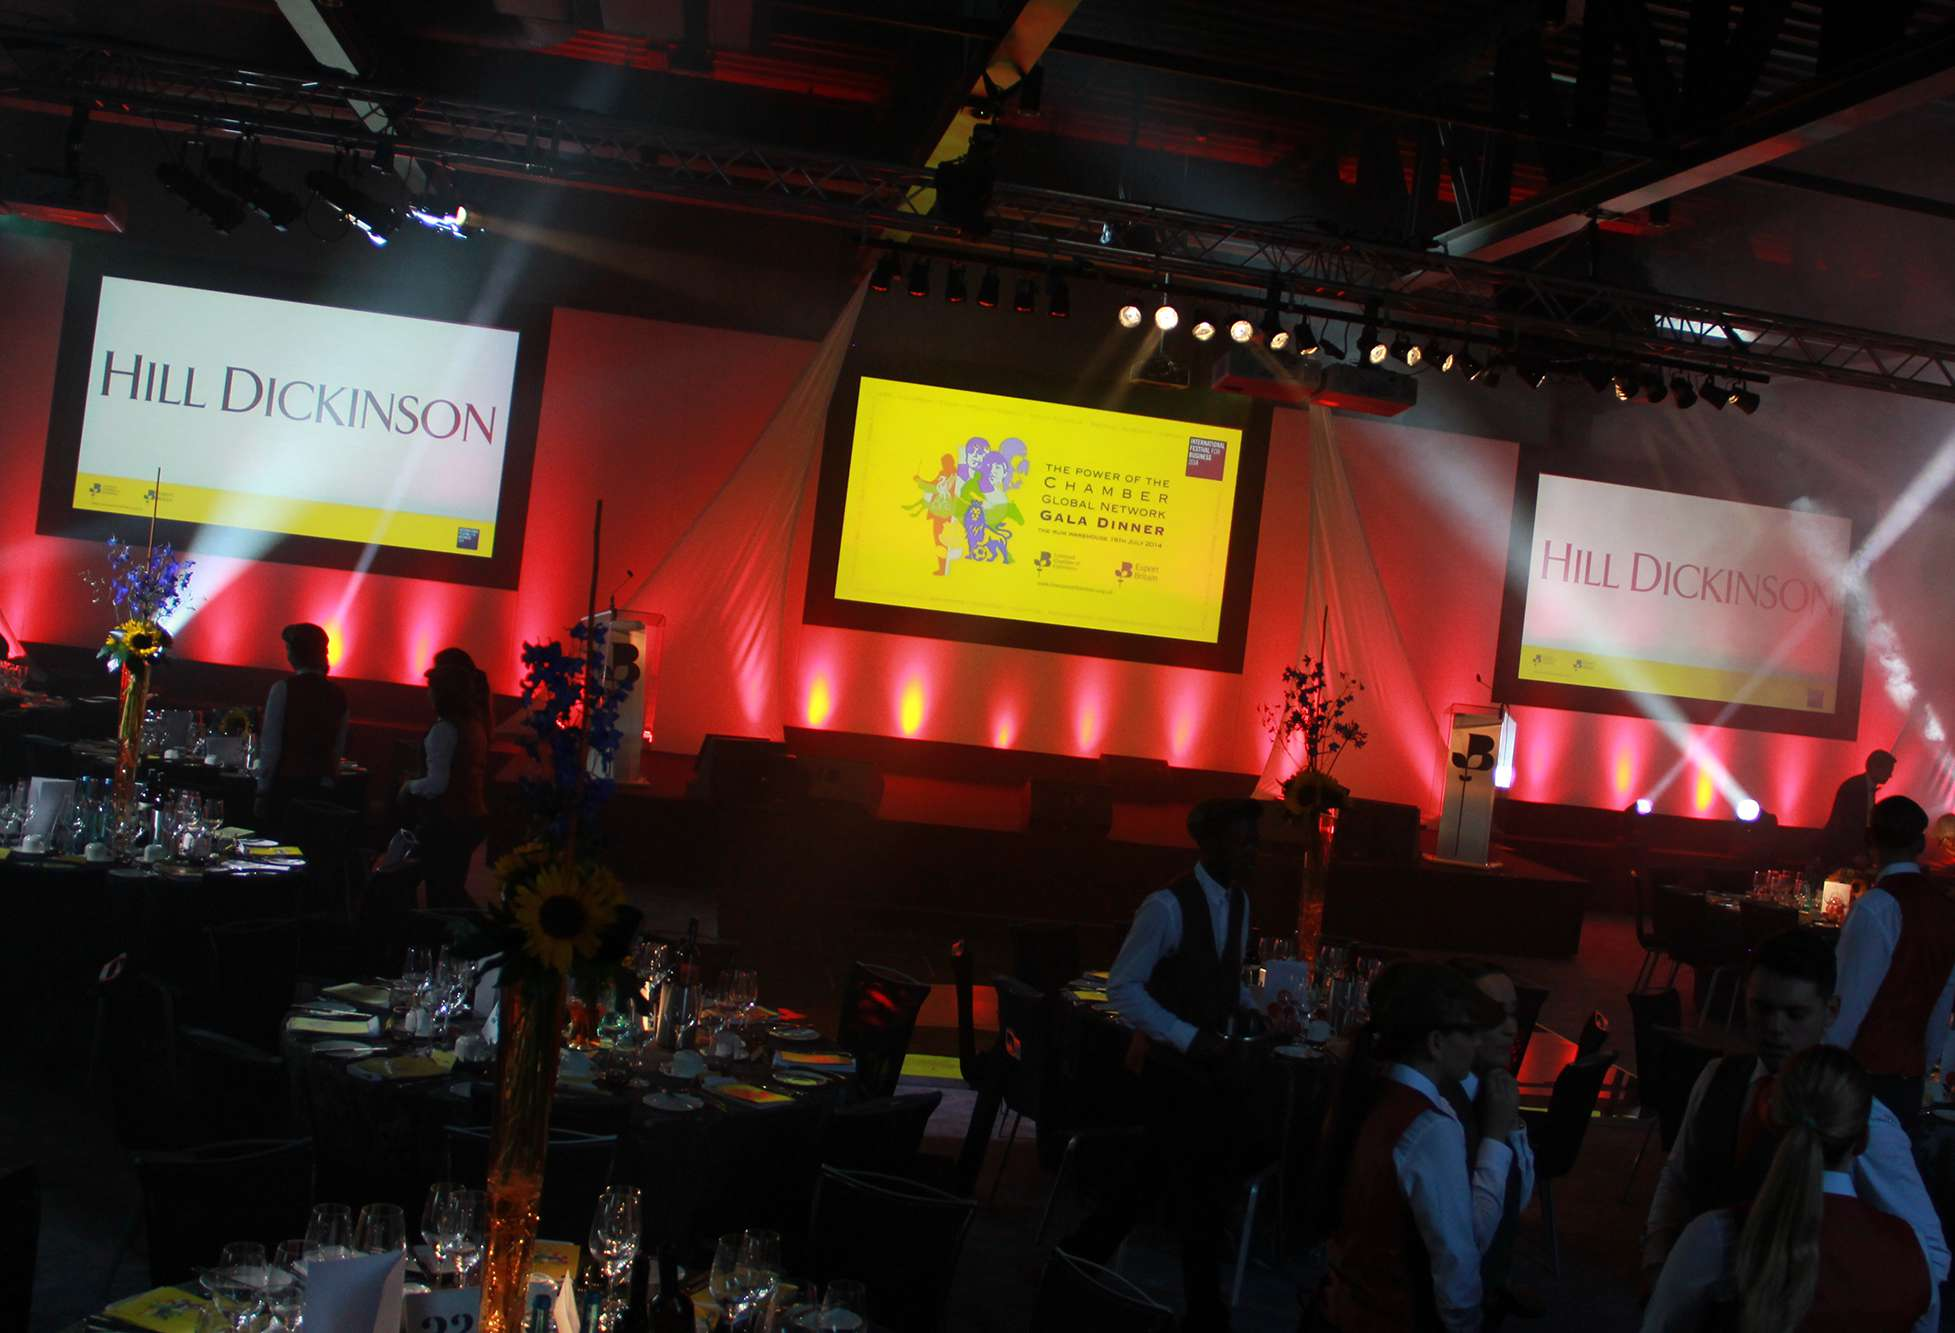 Three screen stage set, staging, lighting and audio visual set up for a gala dinner in The Rum Warehouse at The Titanic Hotel.